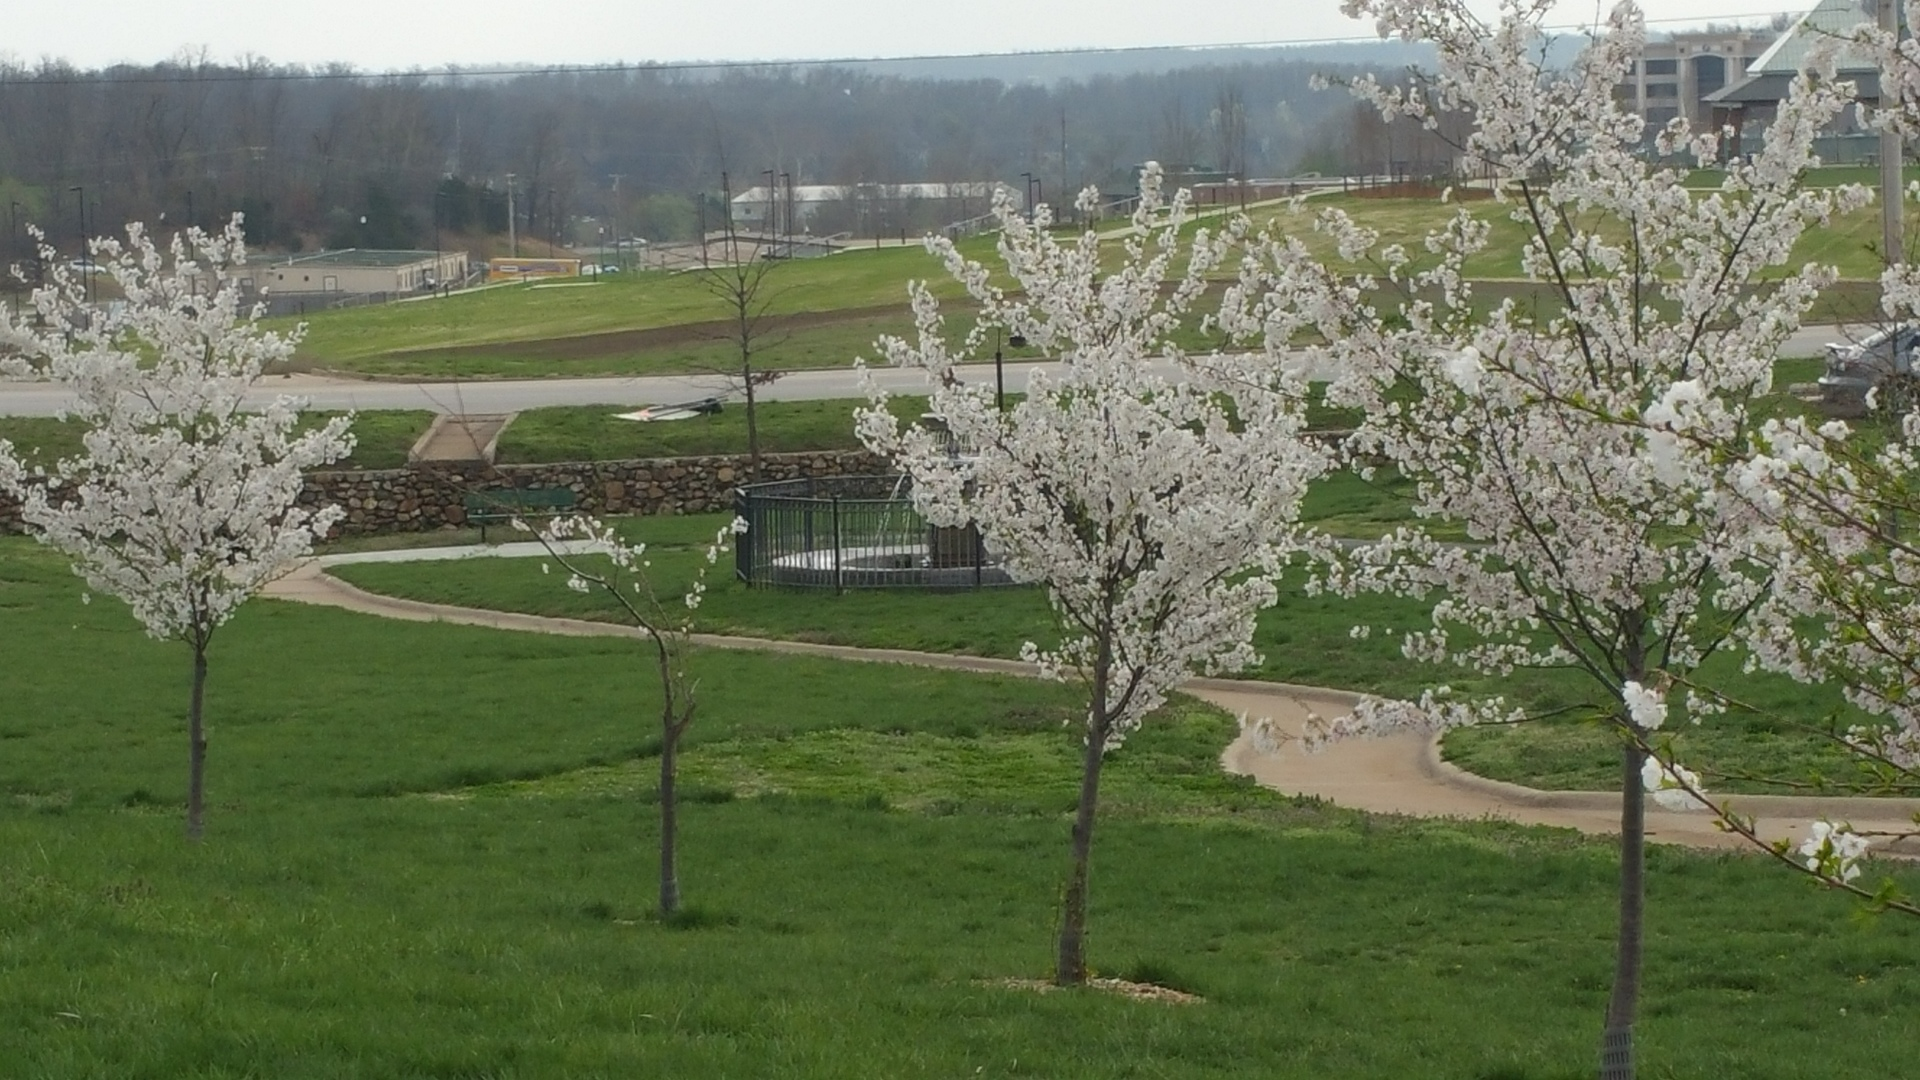 flowering trees with fountain. trees in a park with white flowers and a water fountain in the background